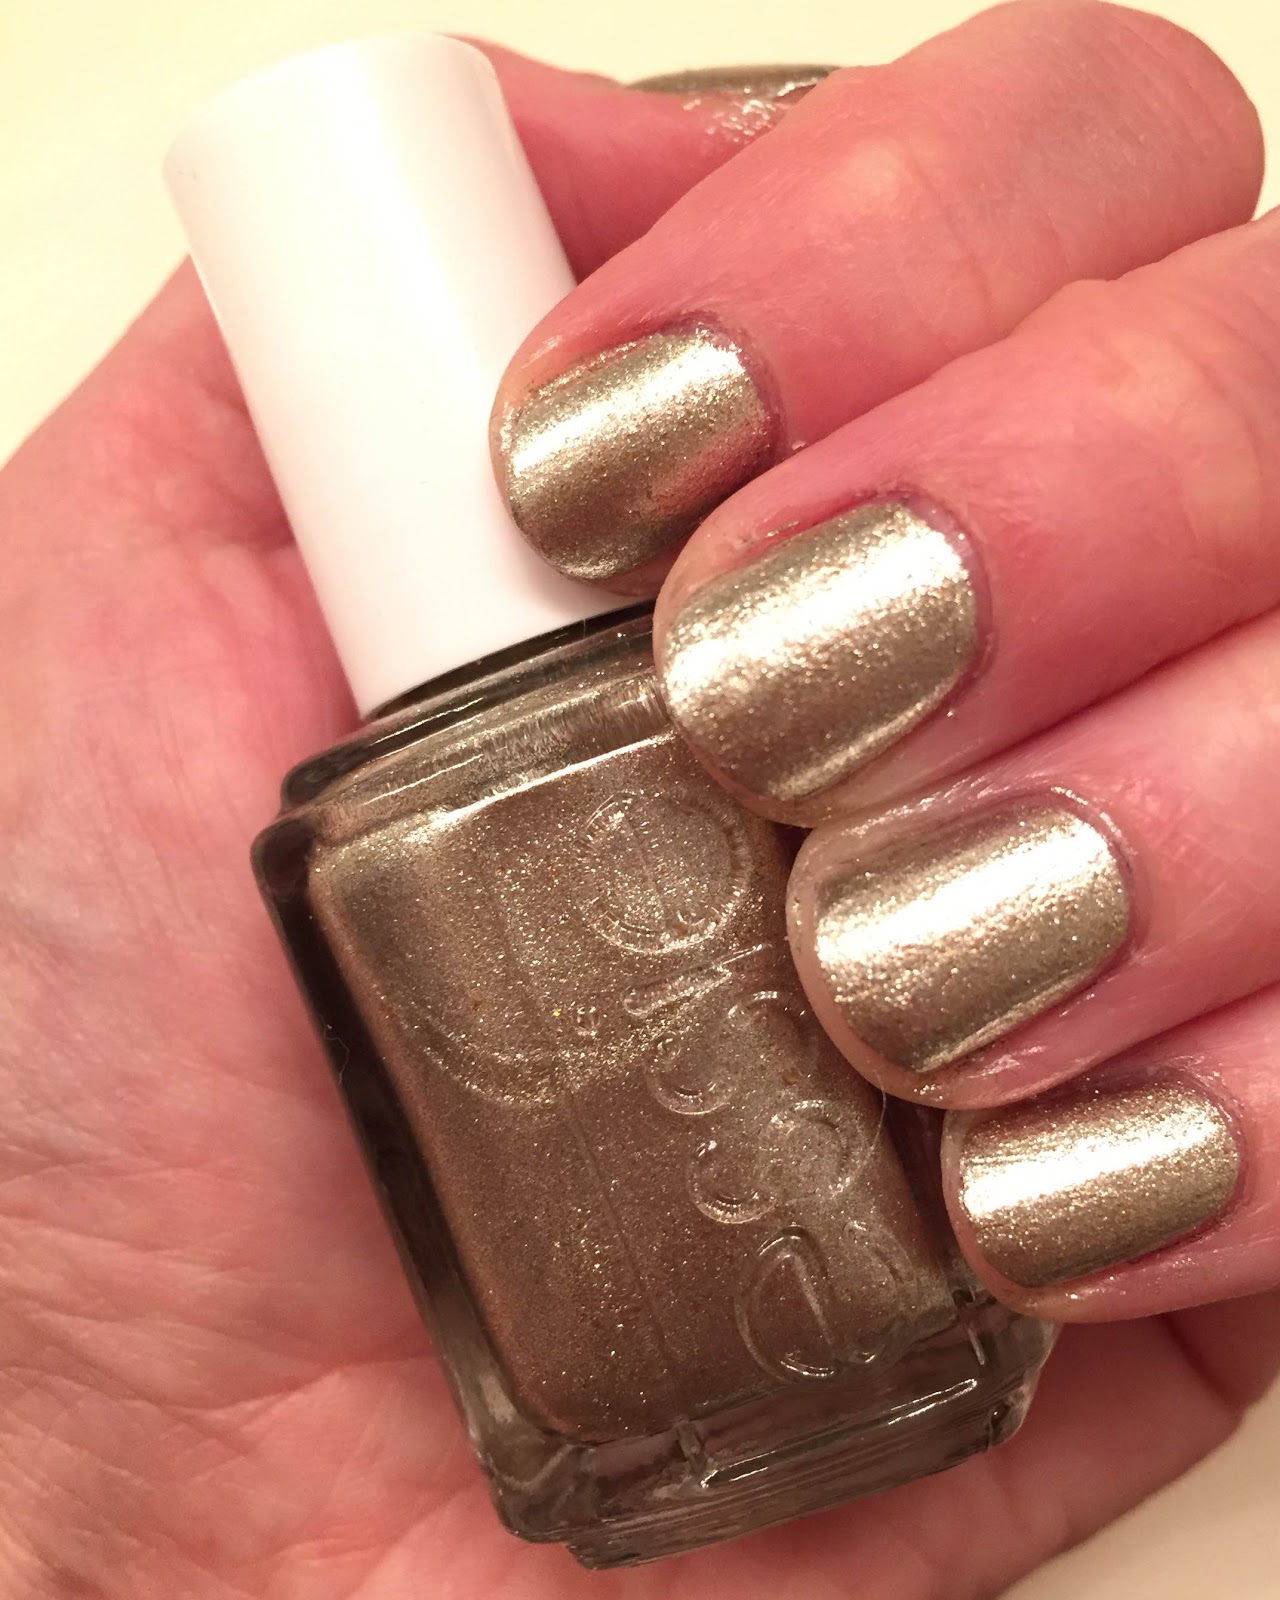 Essie Rose Gold Glitter Nail Polish - Absolute cycle